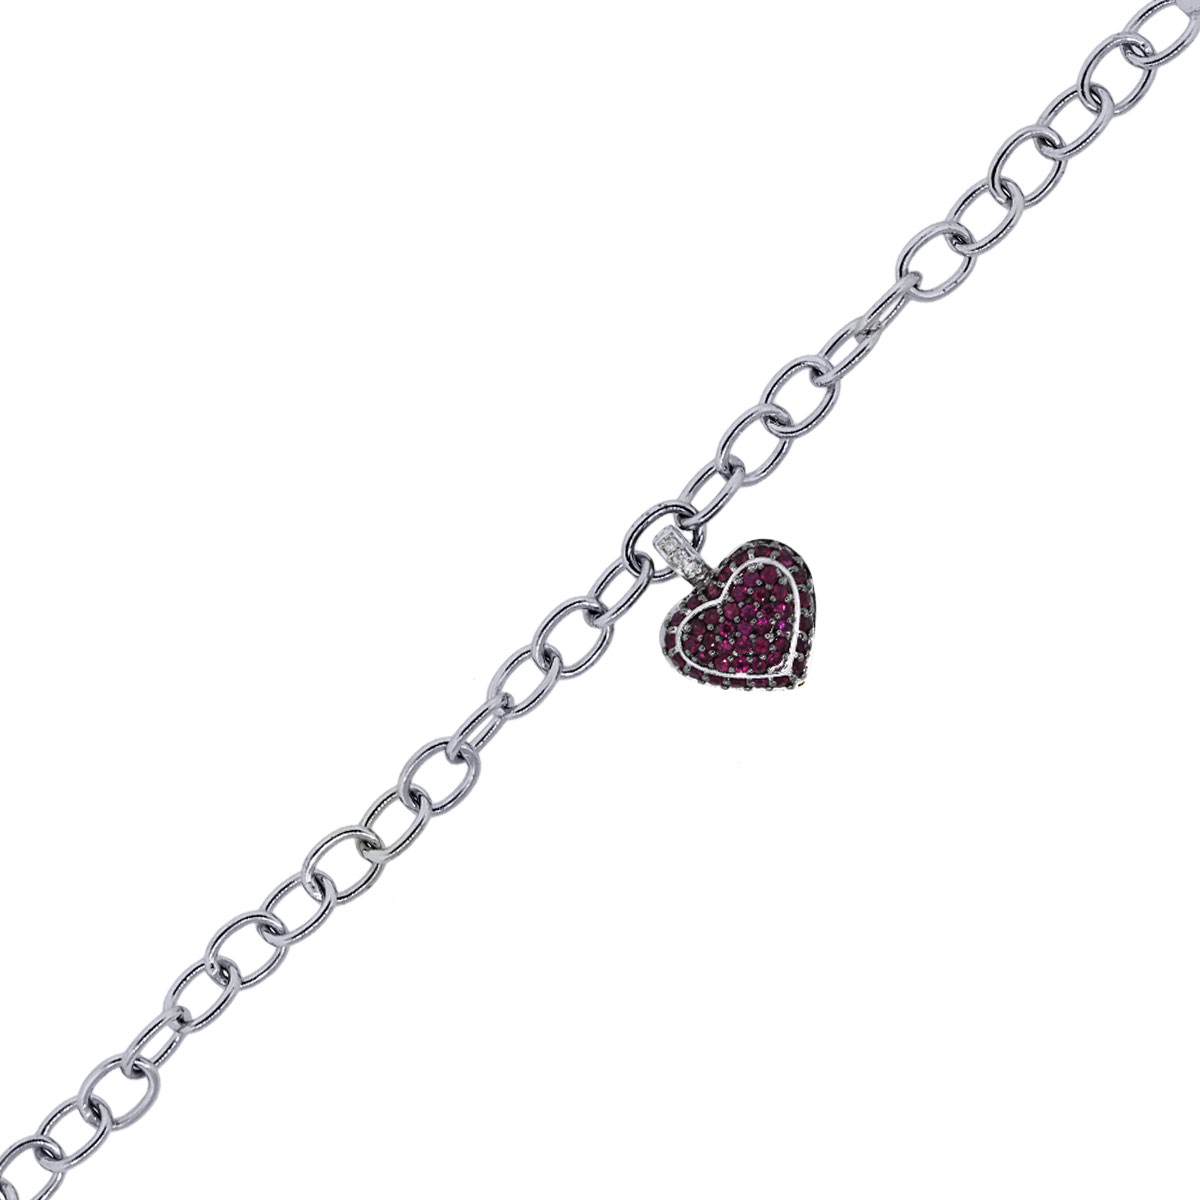 You are viewing this 18k White Gold Ruby Heart Charm Bracelet!